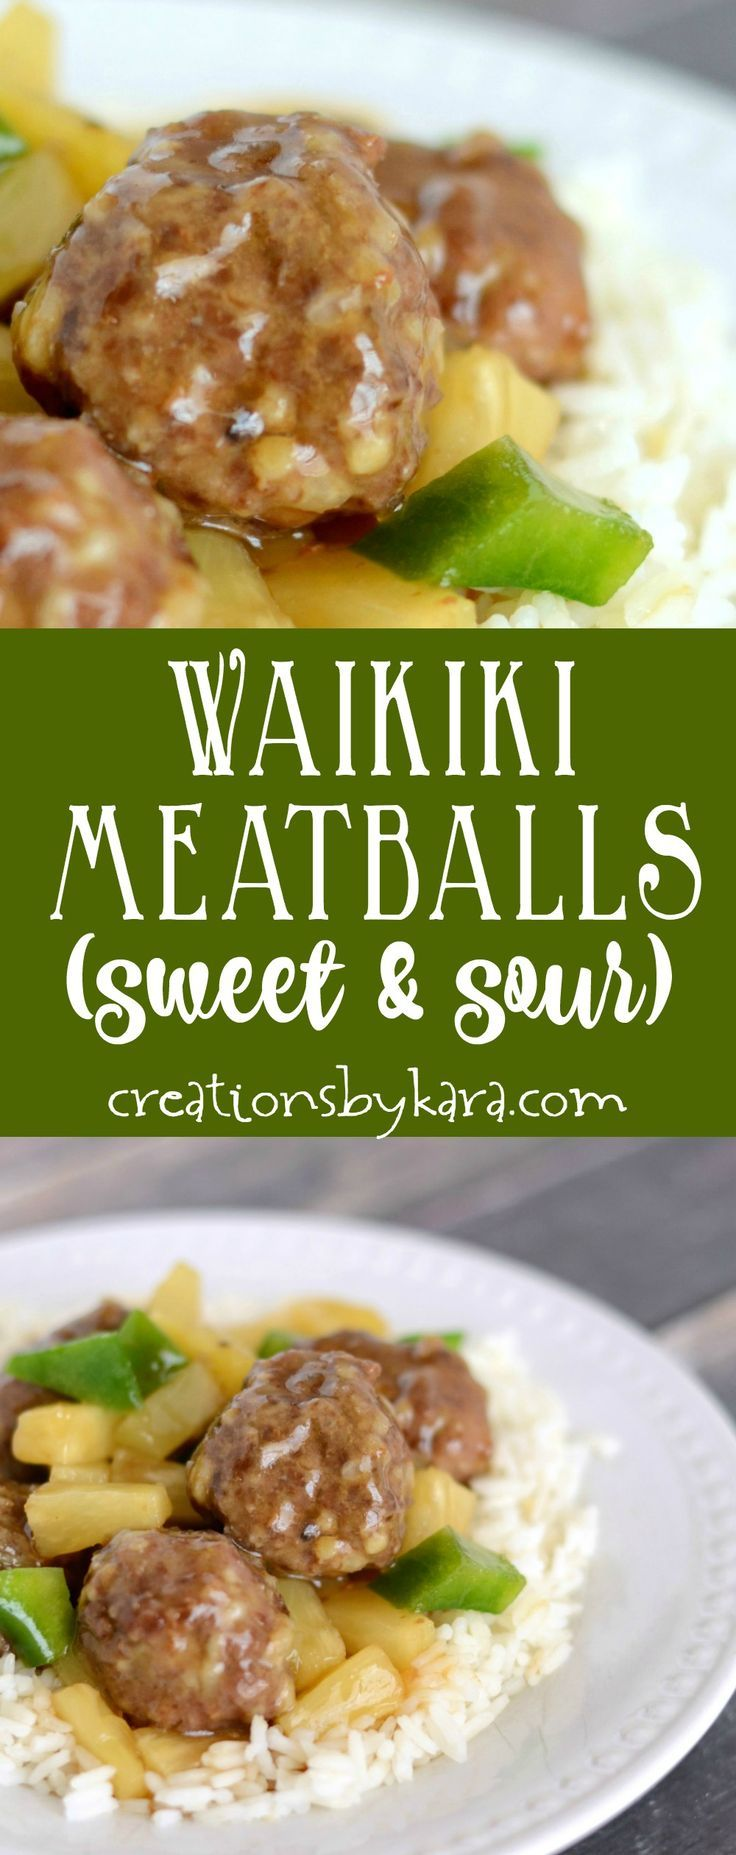 Sweet and Sour Meatballs {Easy!} CATEGORIES: Other Dishes, Sara, Slow-Cooker, Small Bites. BY Sara Wells. Okay folks, we're kickin' it back old school today. The grape jelly adds sweetness and flavor and the result is a wonderful and quick sweet and sour sauce.